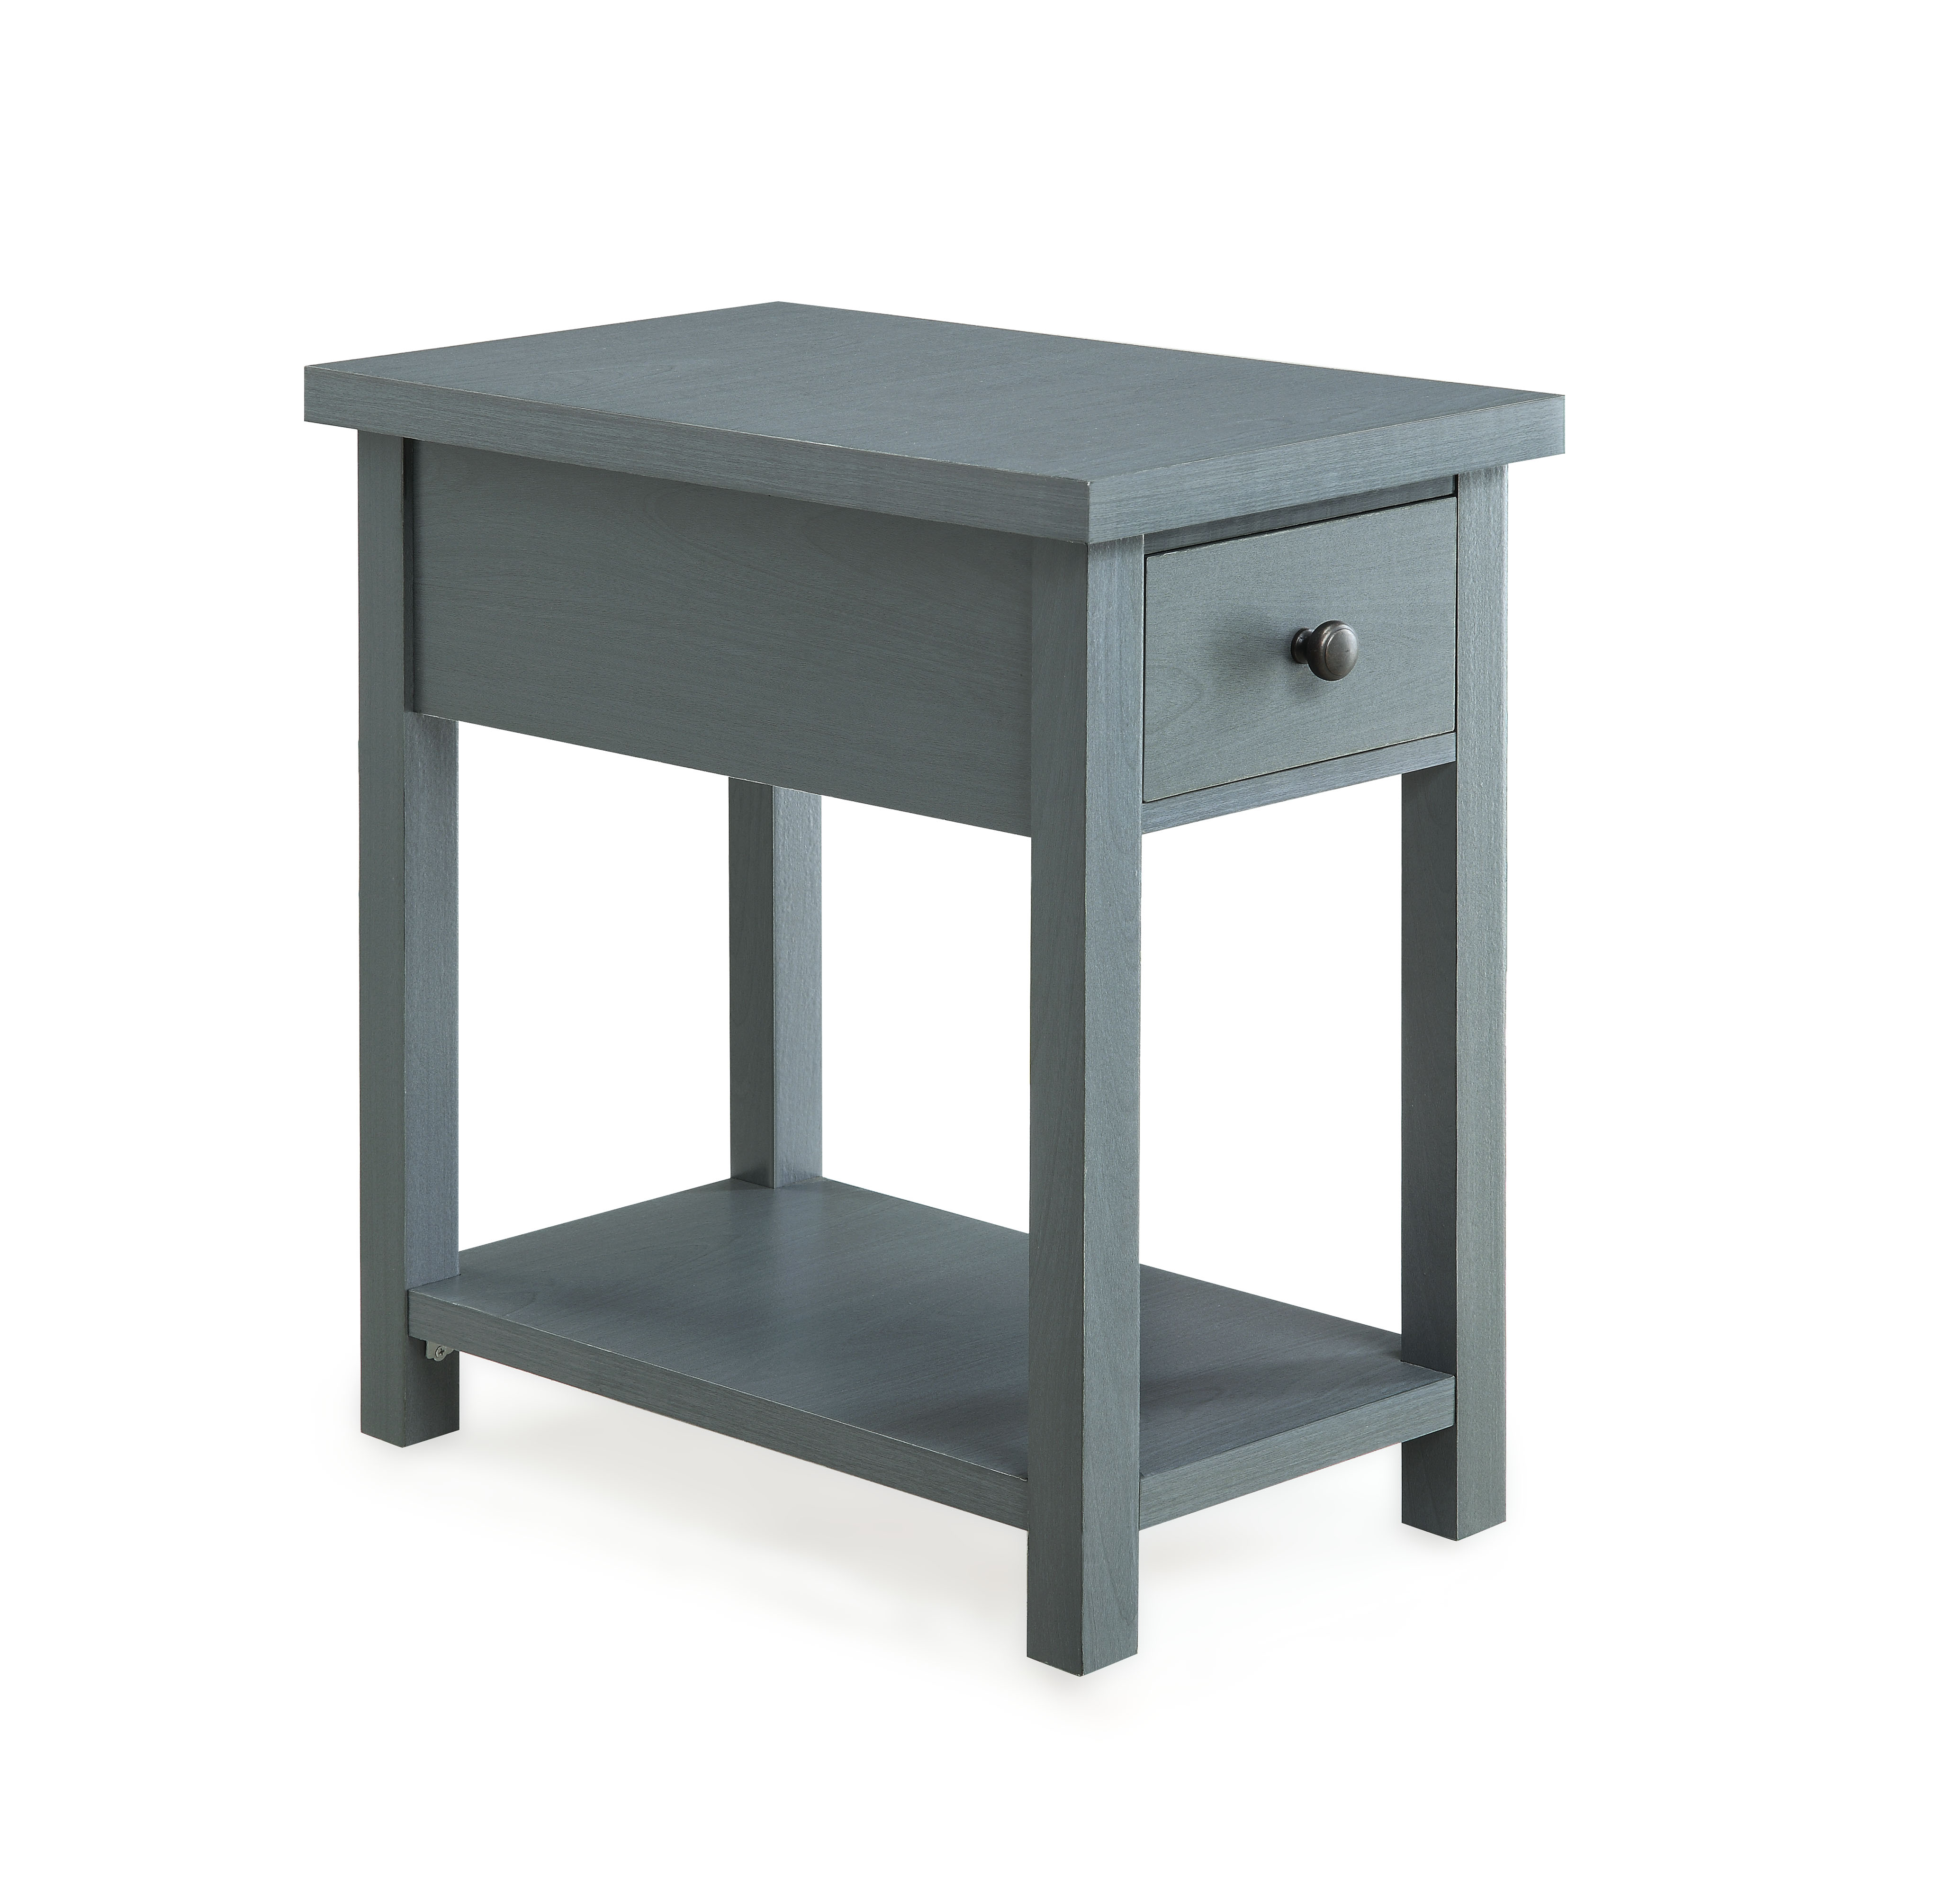 better homes and gardens oxford square end table with drawer accent gray available blue red side lamp shades living room armchair narrow hallway console cabinet cylinder black bar